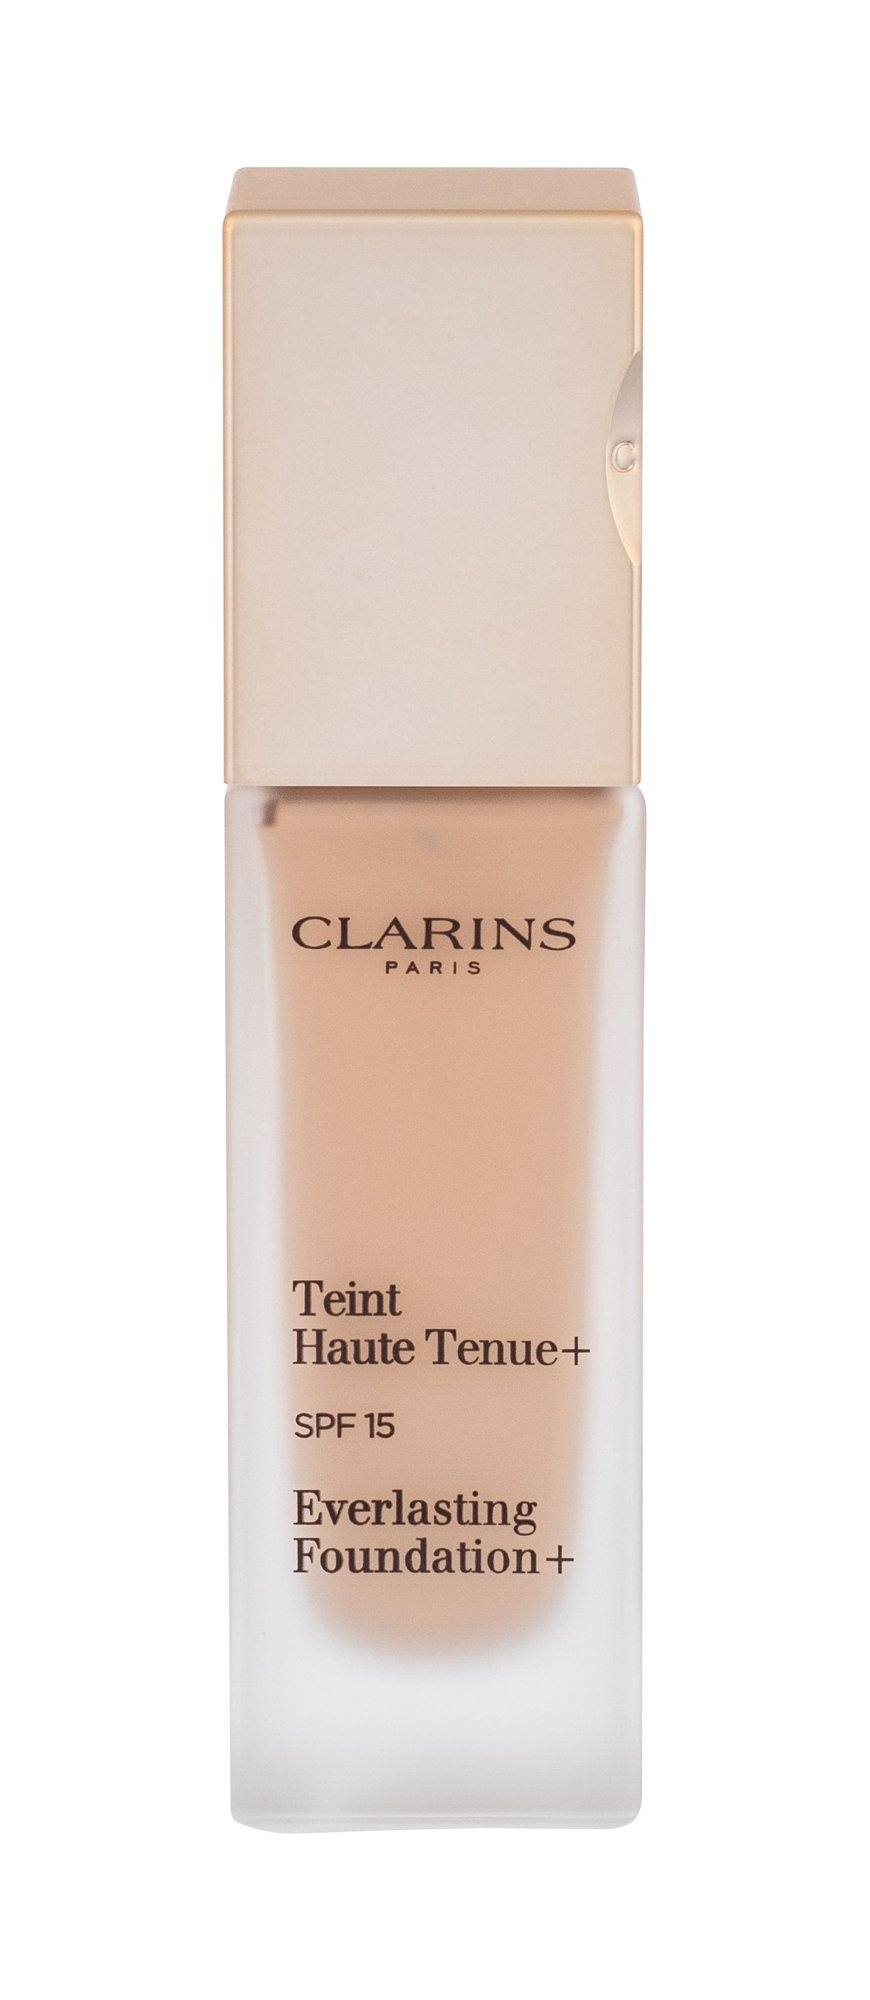 Clarins Everlasting Foundation+ Cosmetic 30ml 110 Honey